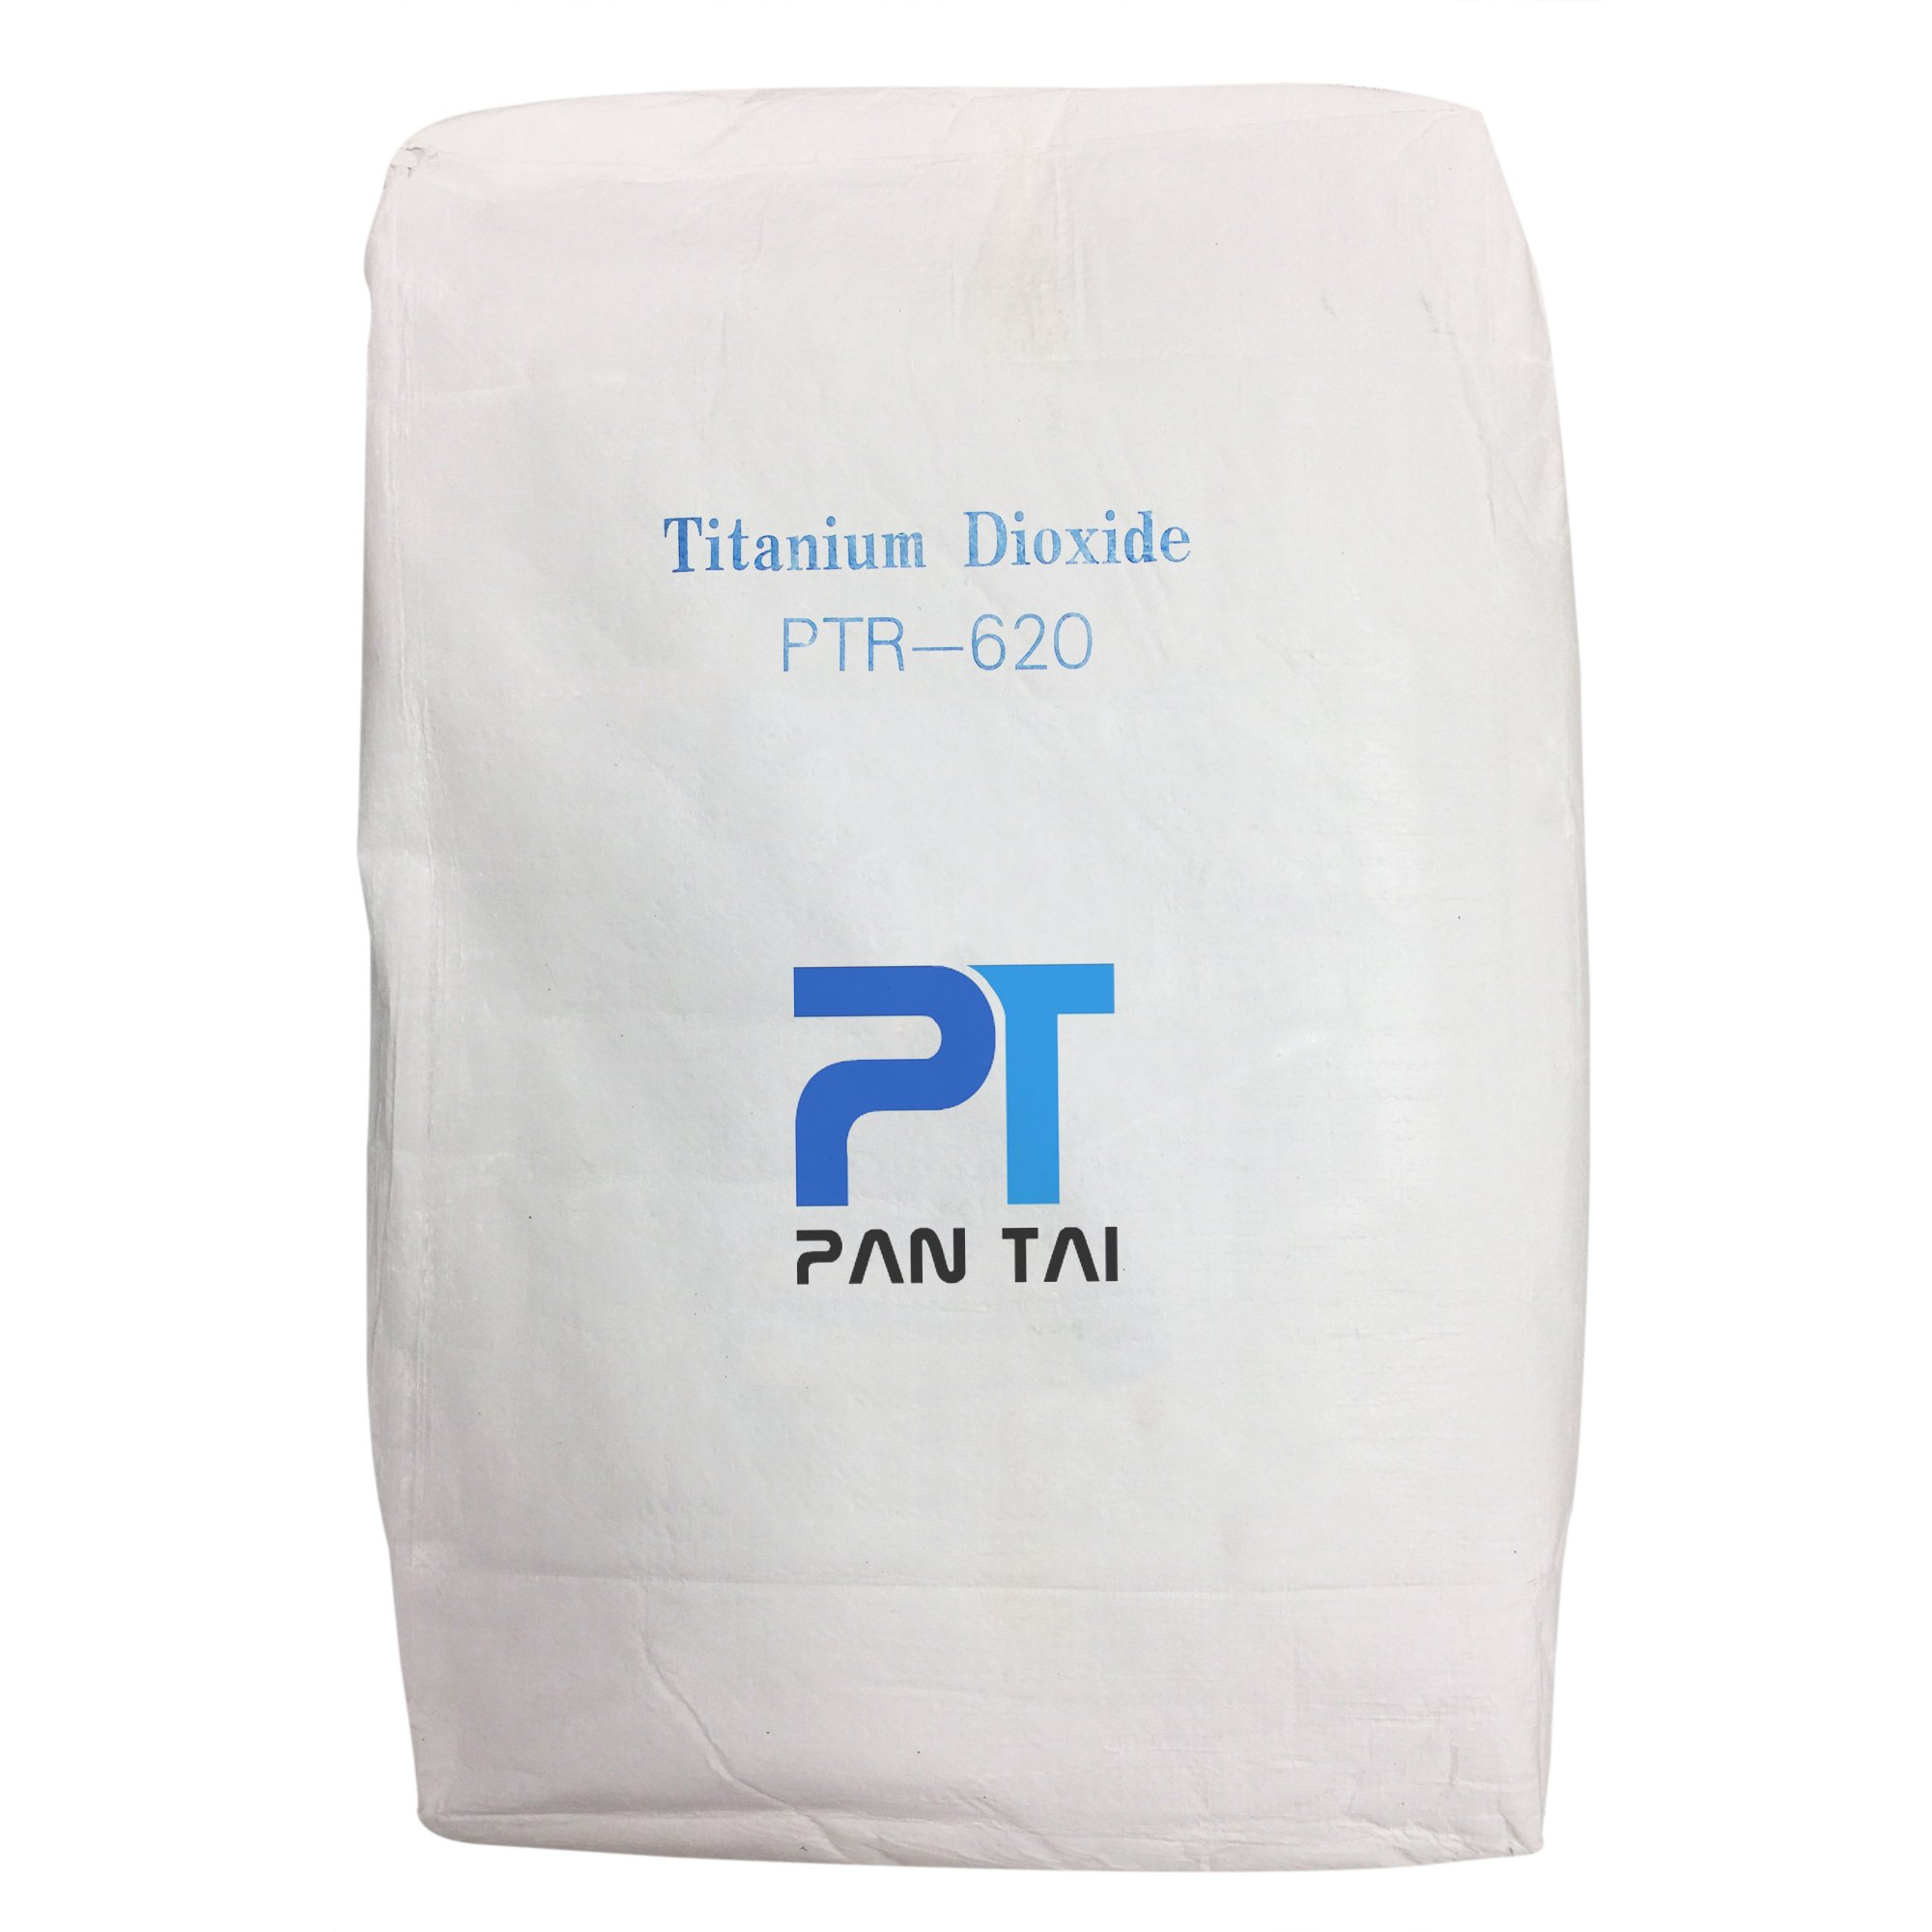 Titanium Dioxide Cosmetic Grade Soap Making, Crafts, Paints and Pigment Colorant Resealable Pouch TiO2 PTR-620 10lb